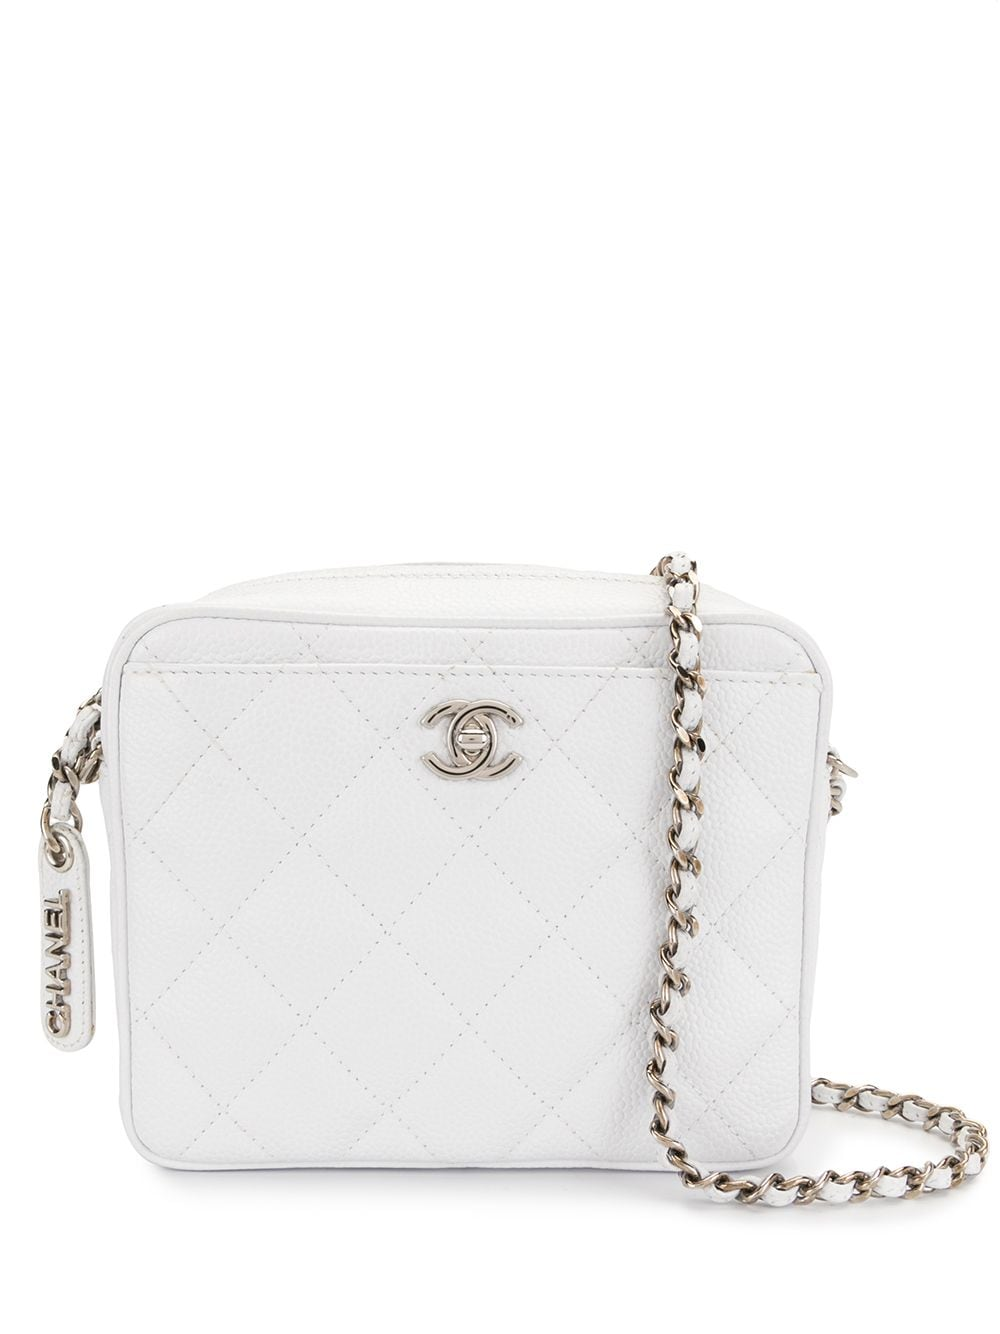 Chanel Pre-Owned 1997 diamond quilted crossbody bag - White